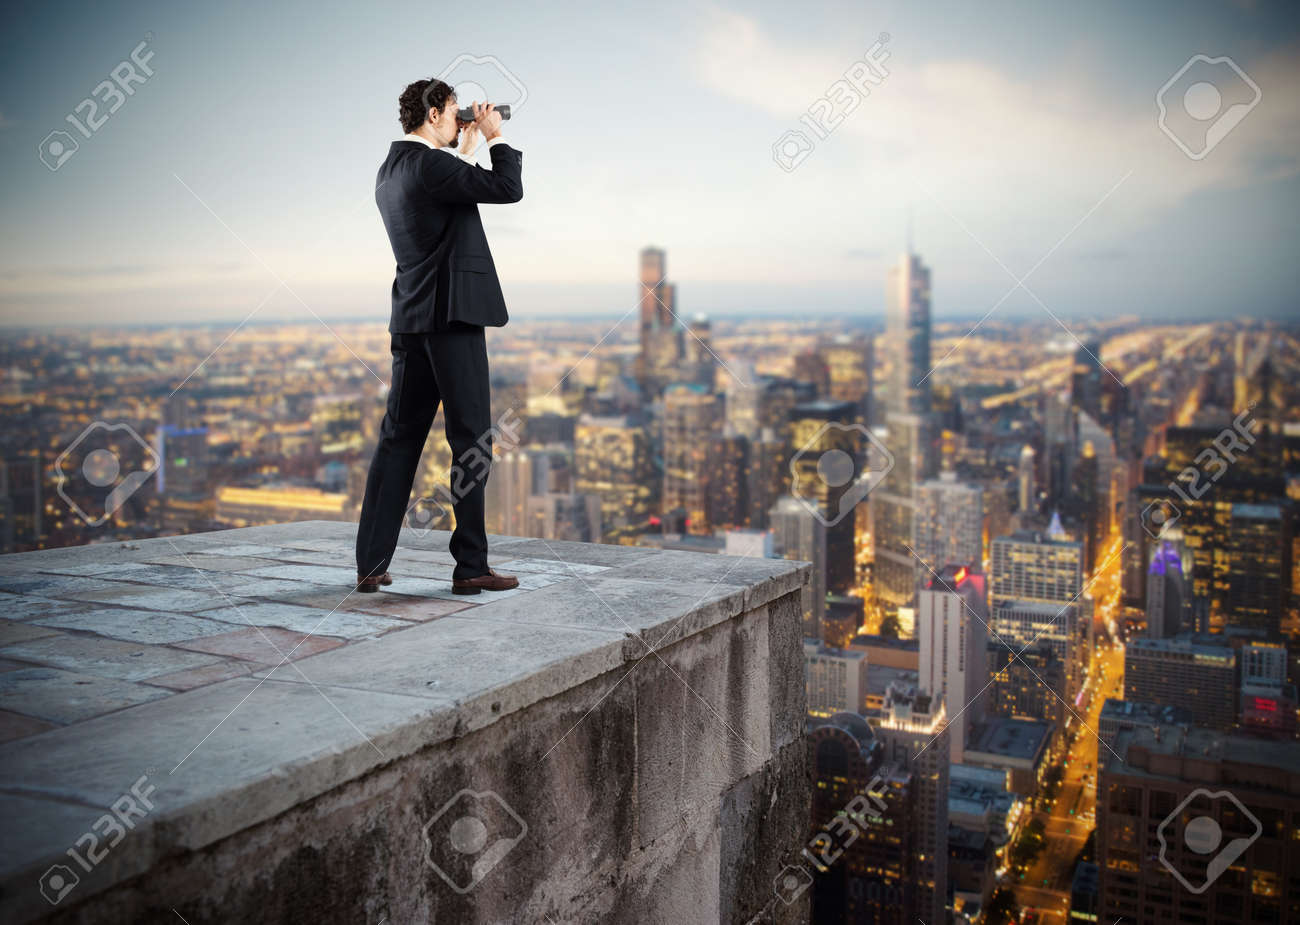 Businessman looks at the city from the roof with binoculars - 63888858